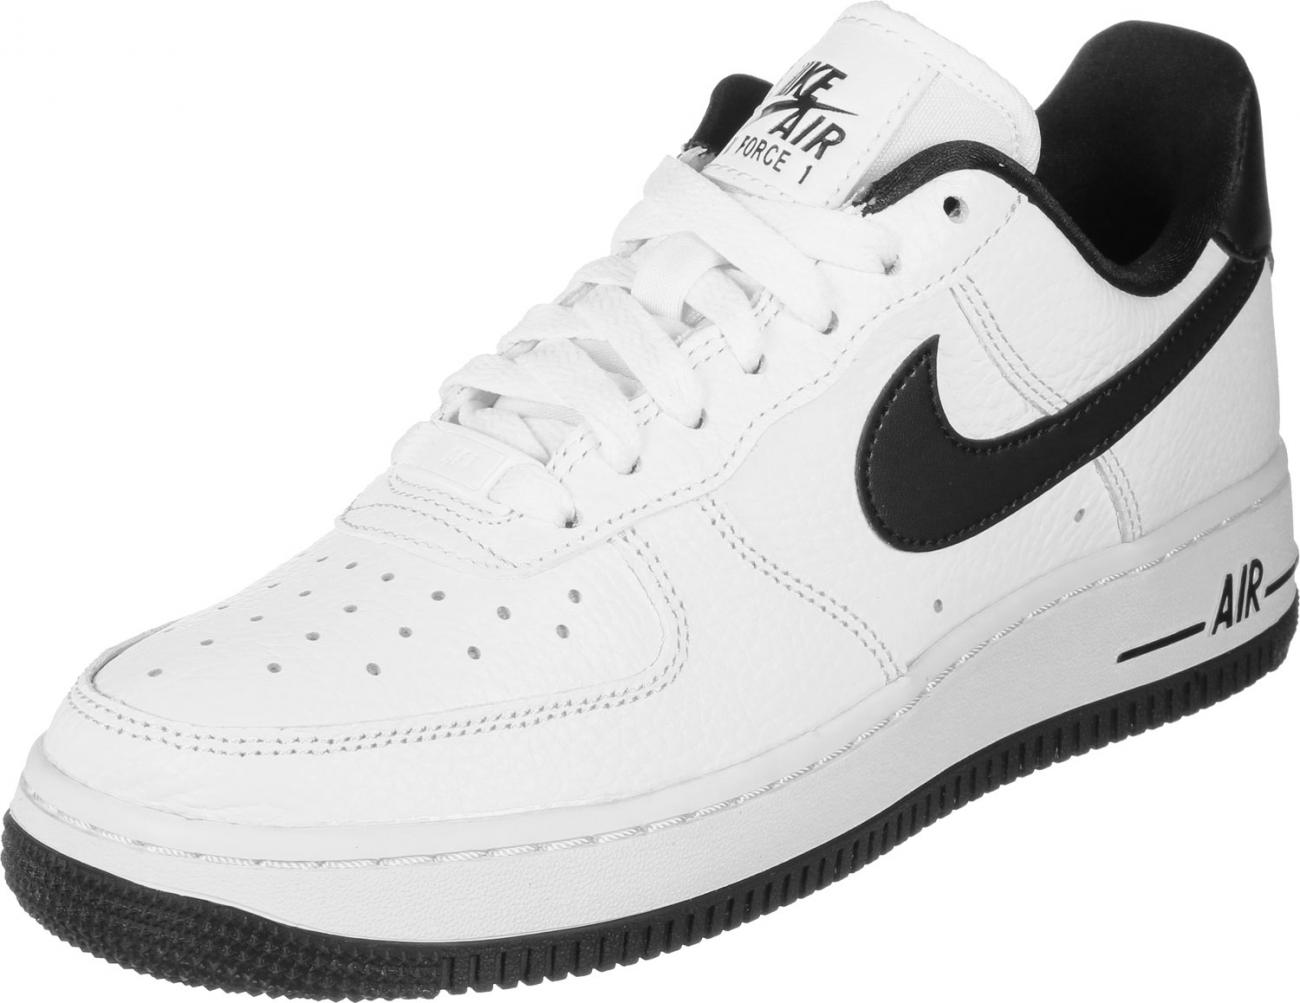 chaussure air force 1 blanche femme